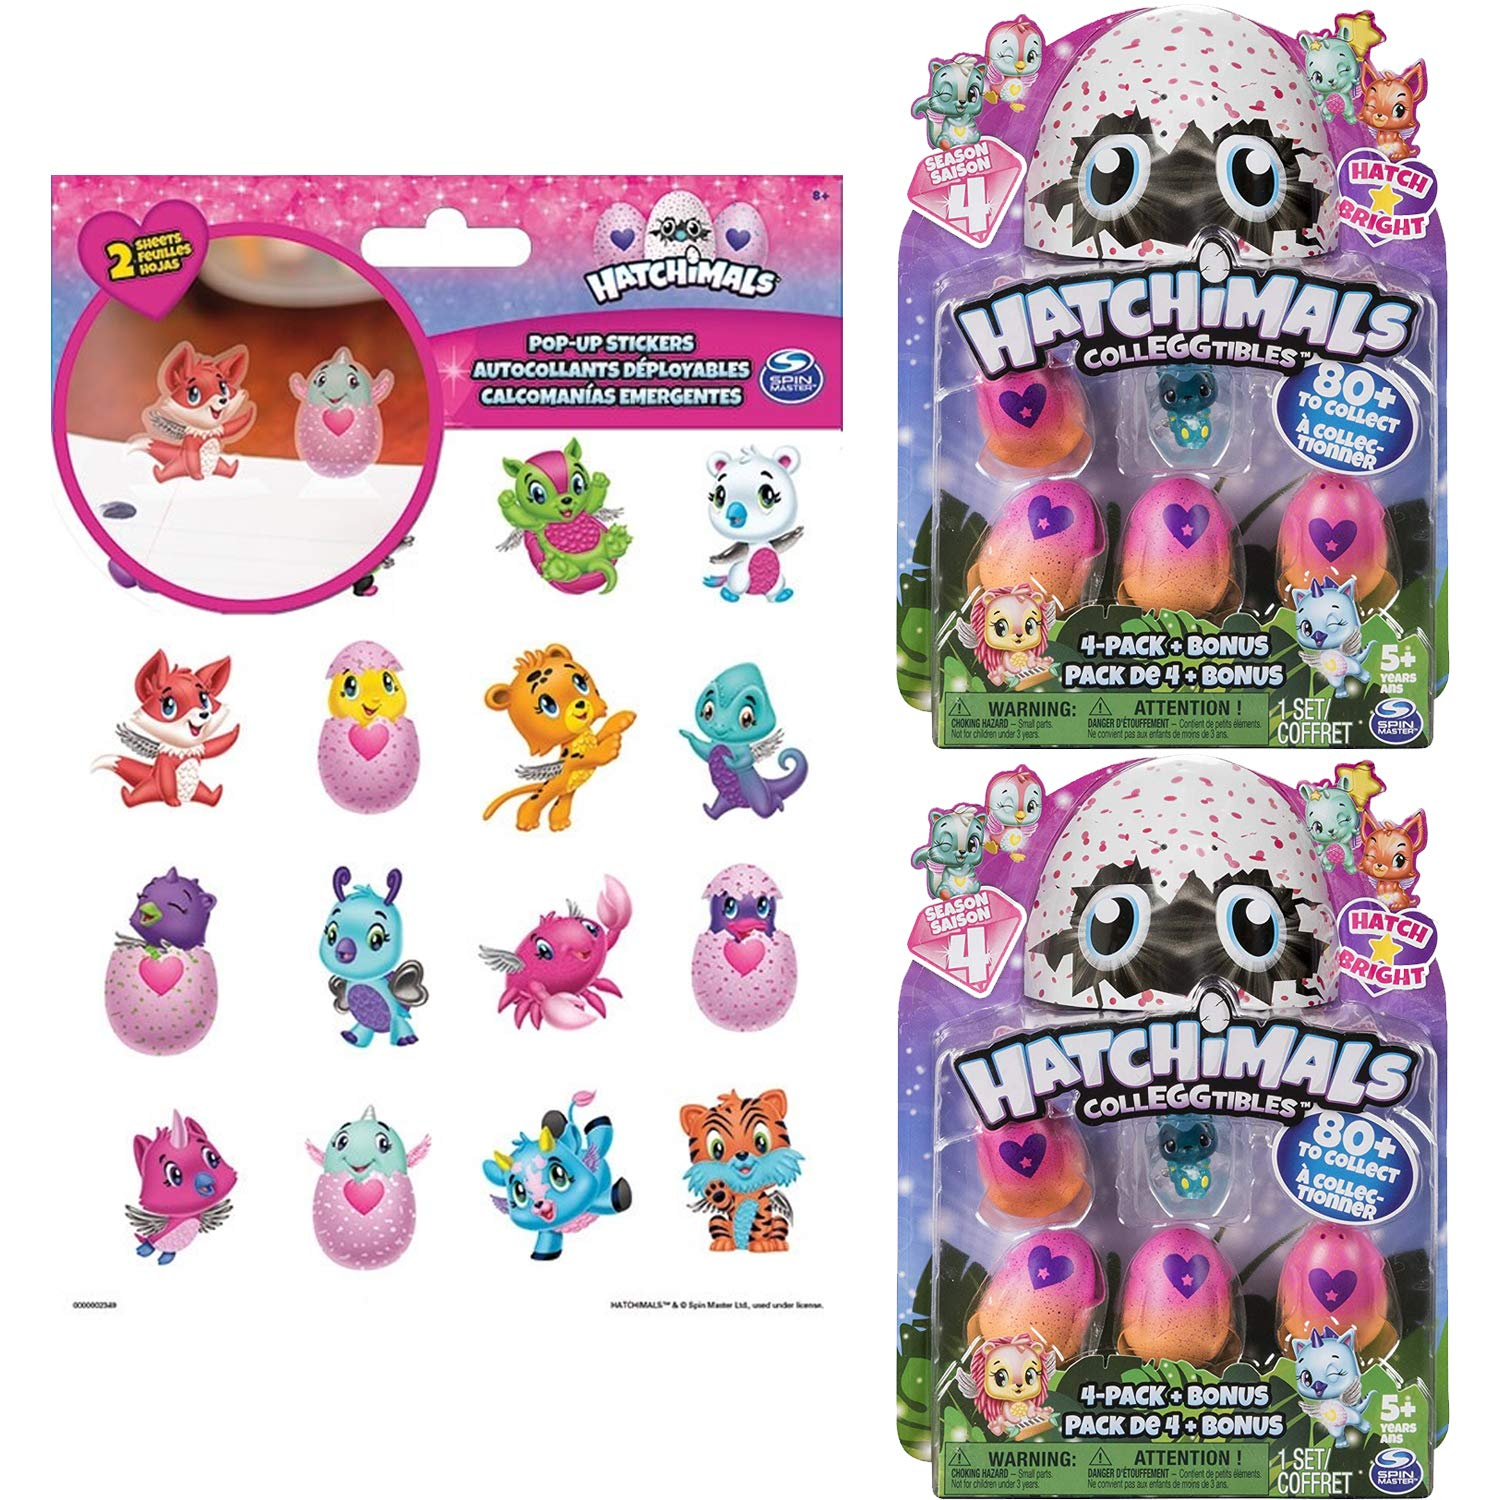 Hatchimals CollEGGtibles Season 4 Hatch Bright 4-Pack + Bonus, Bundle of 2, with 32 Hatchimals Pop Up Stickers, Ages 5 & Up (Styles and Colors May Vary)